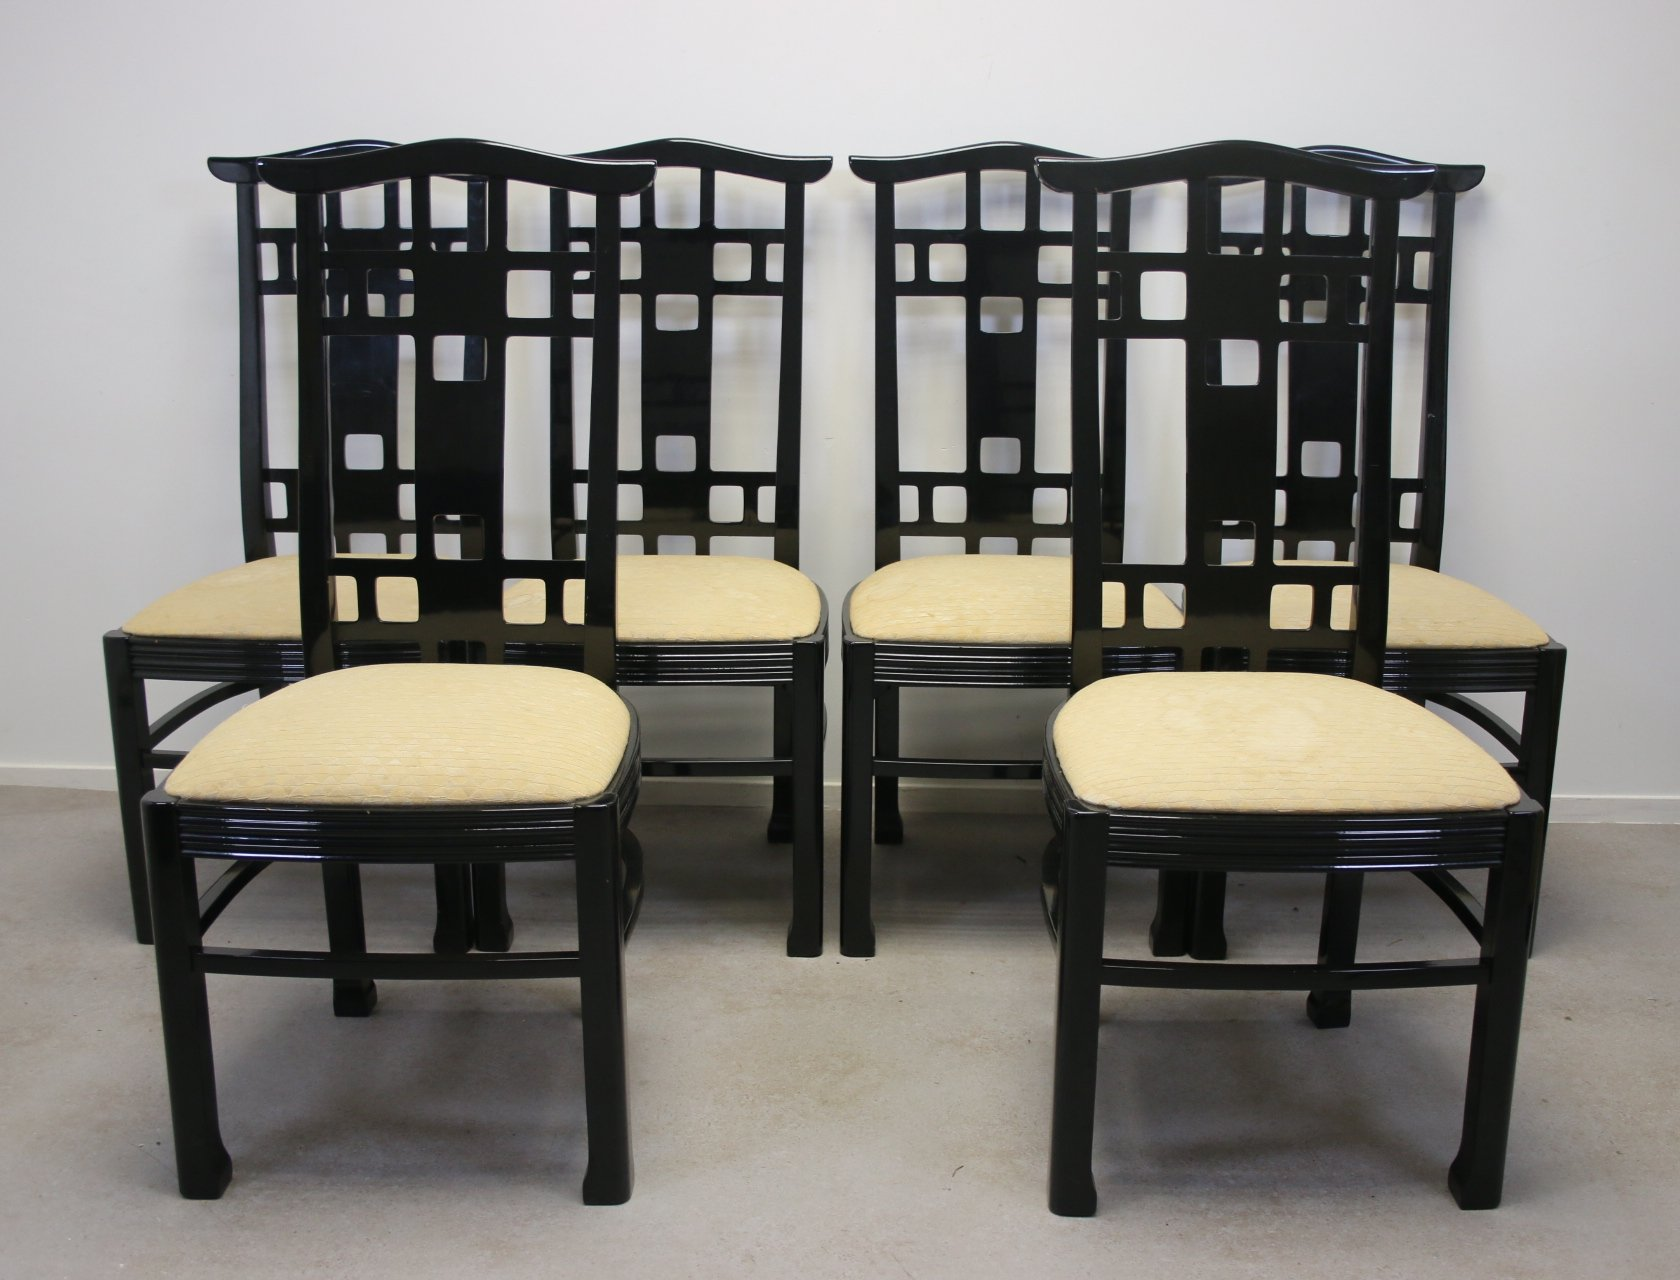 Picture of: Set Of 6 Black Lacquered Japanese Style Dining Room Chairs 1970s 123634